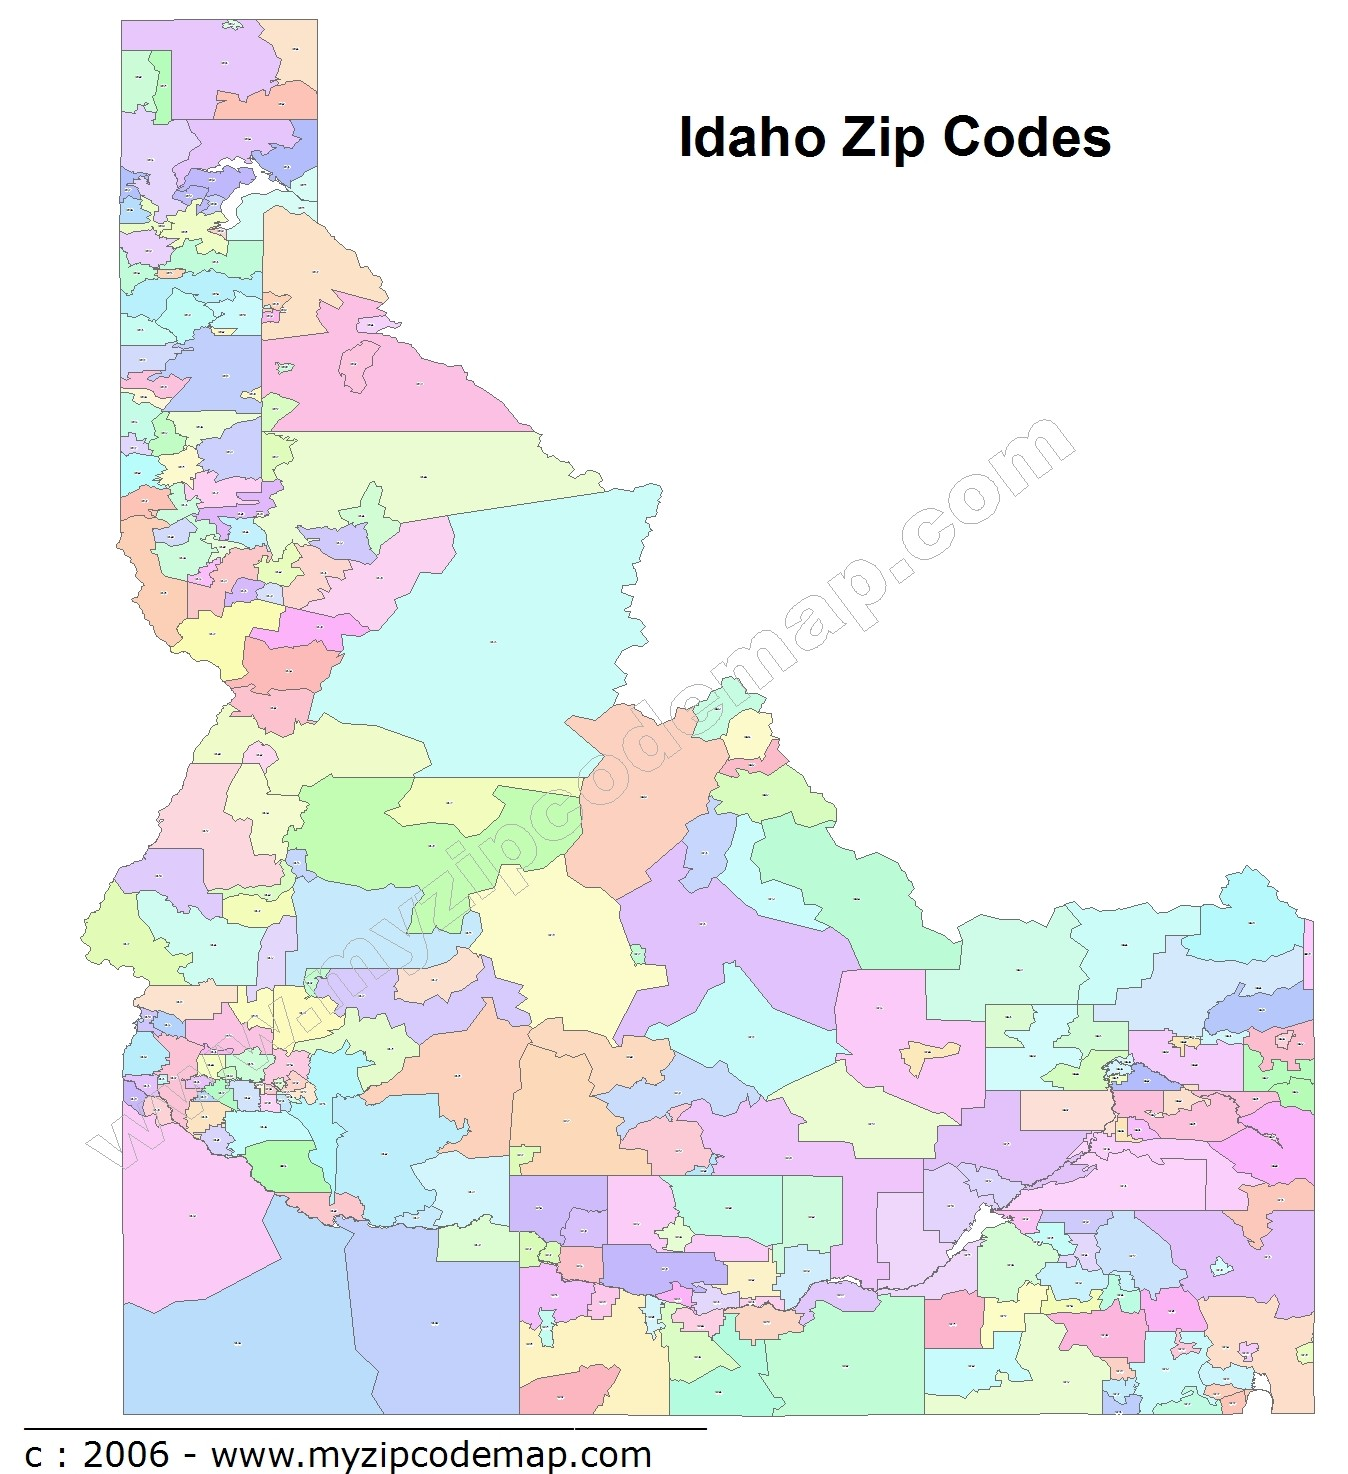 Idaho Zip Code Maps Free Idaho Zip Code Maps - Map of idaho with cities